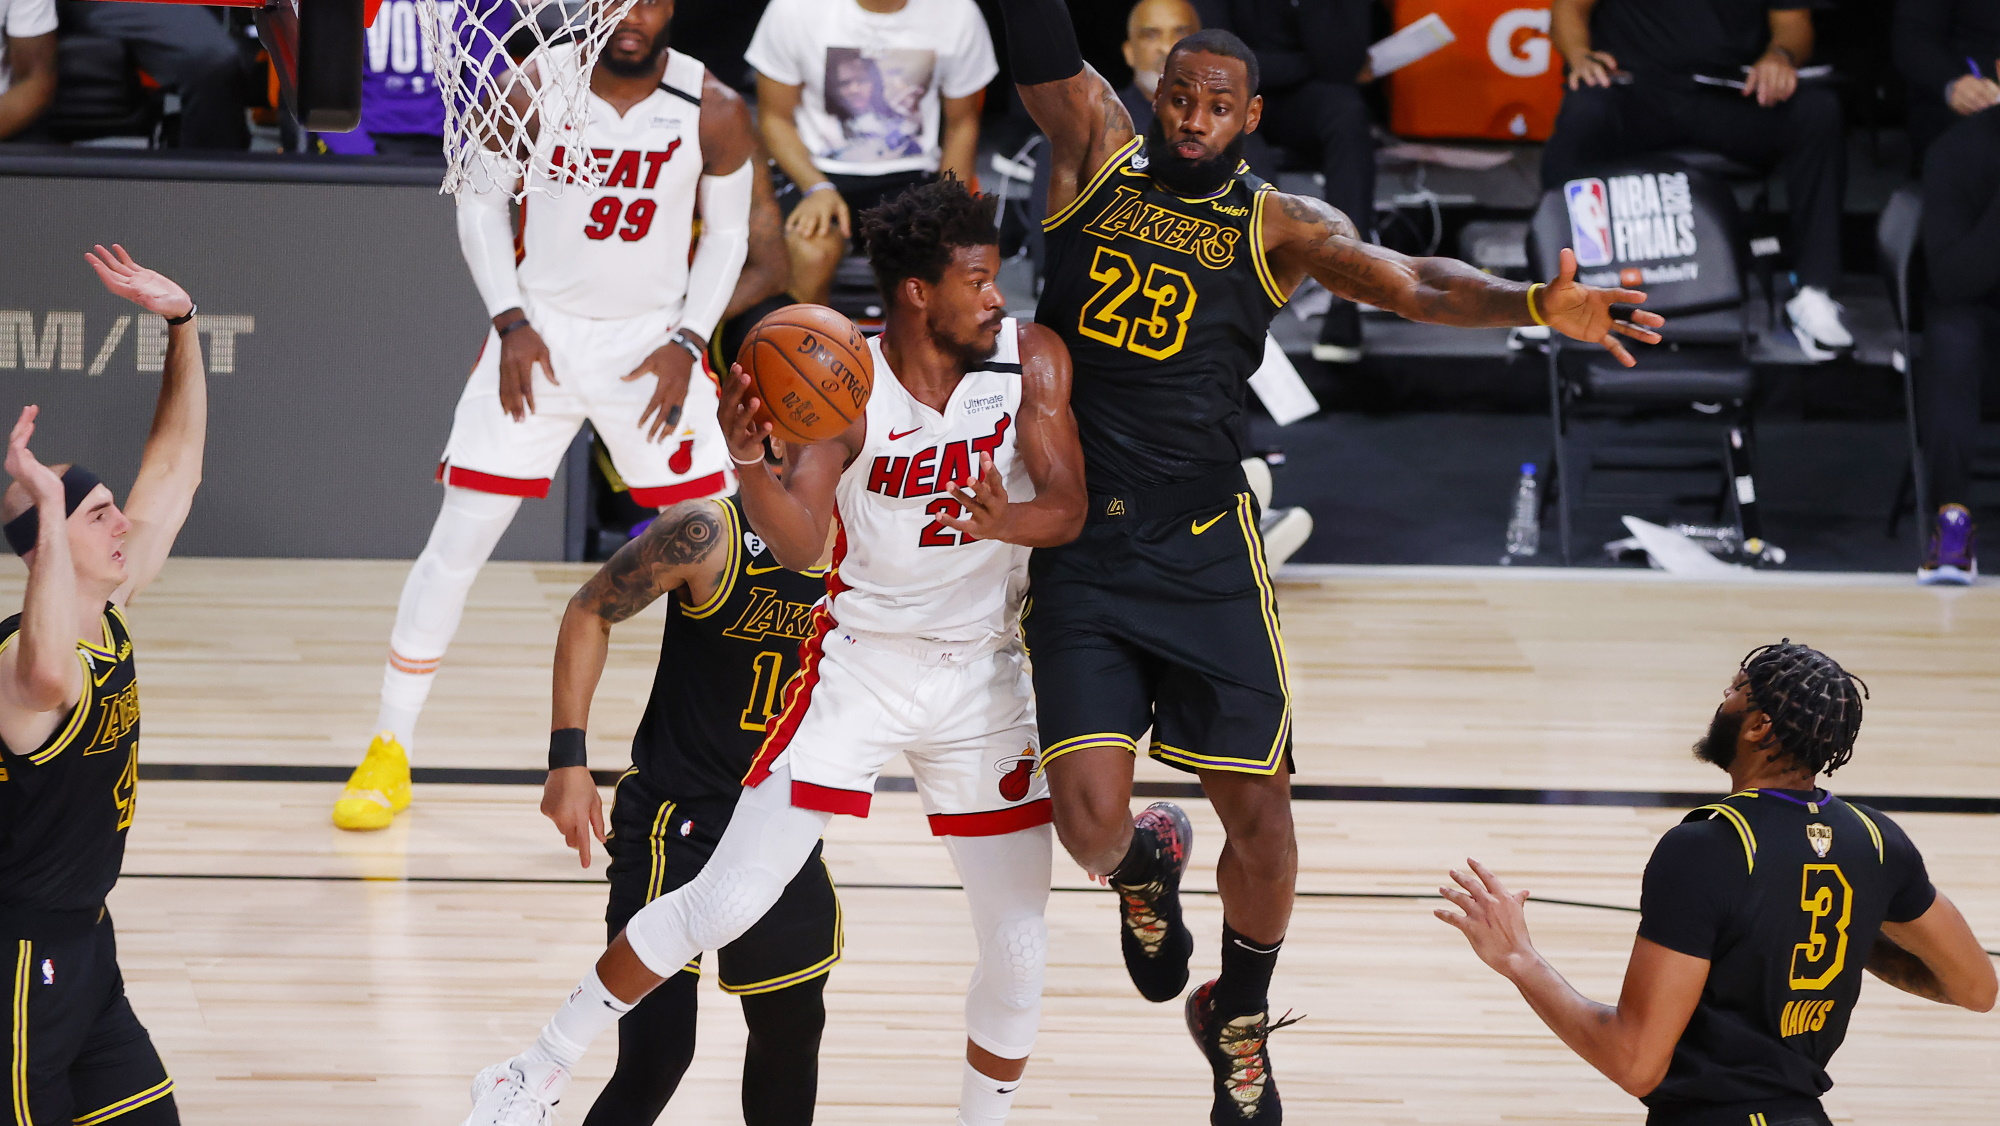 Lakers Vs Heat Live Stream How To Watch Nba Finals Game 3 Online From Anywhere Techradar